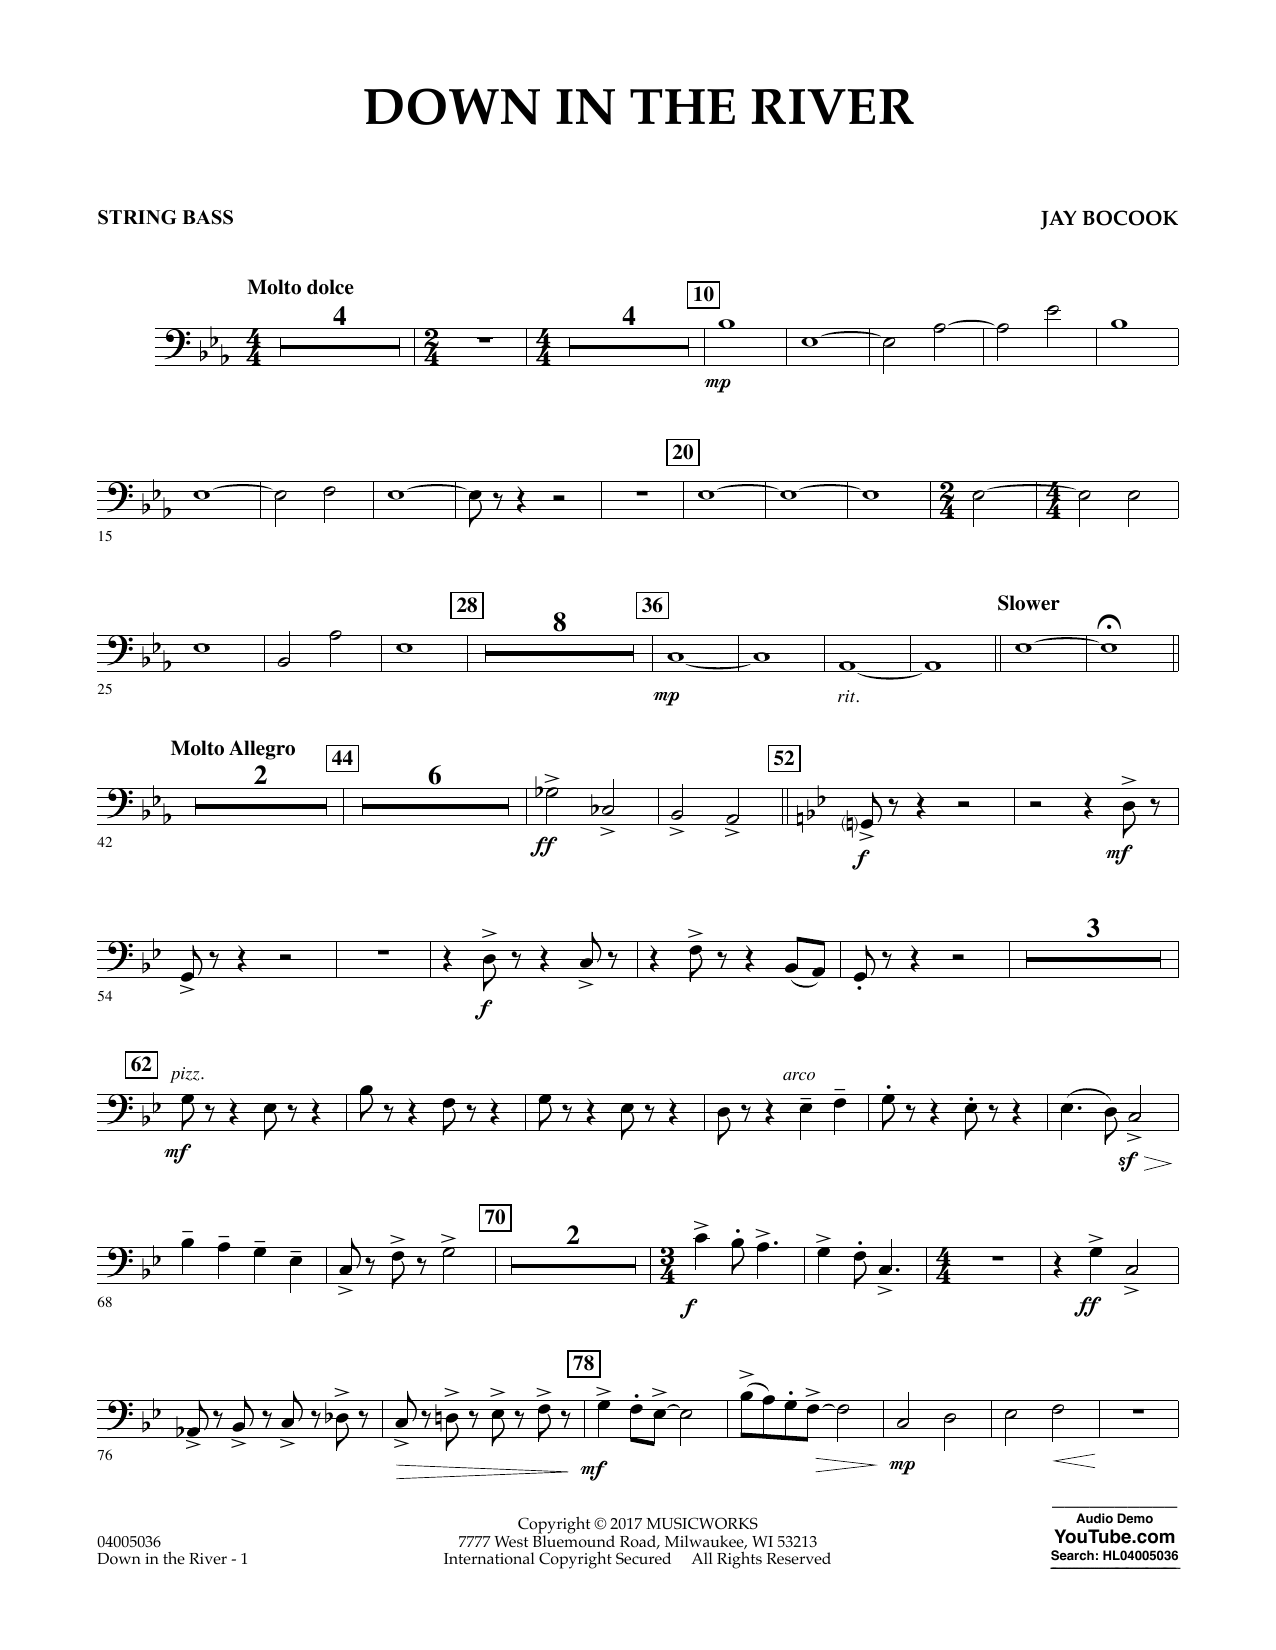 Down in the River - String Bass Sheet Music